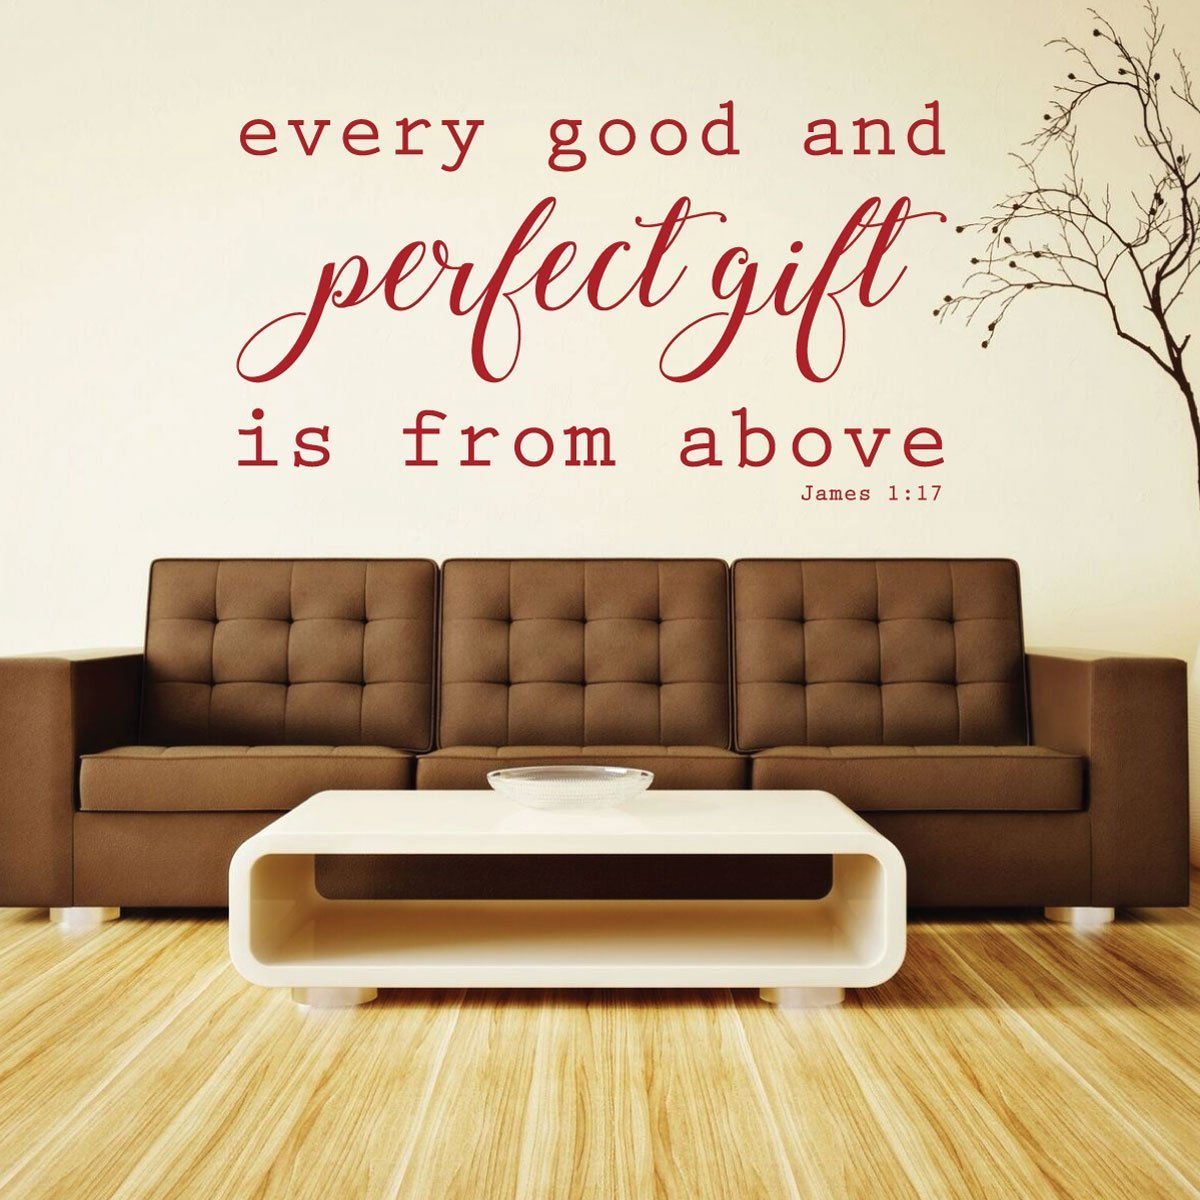 Delicieux Bible Verse Wall Decals   James 1:17   Every Good And Perfect Gift Is